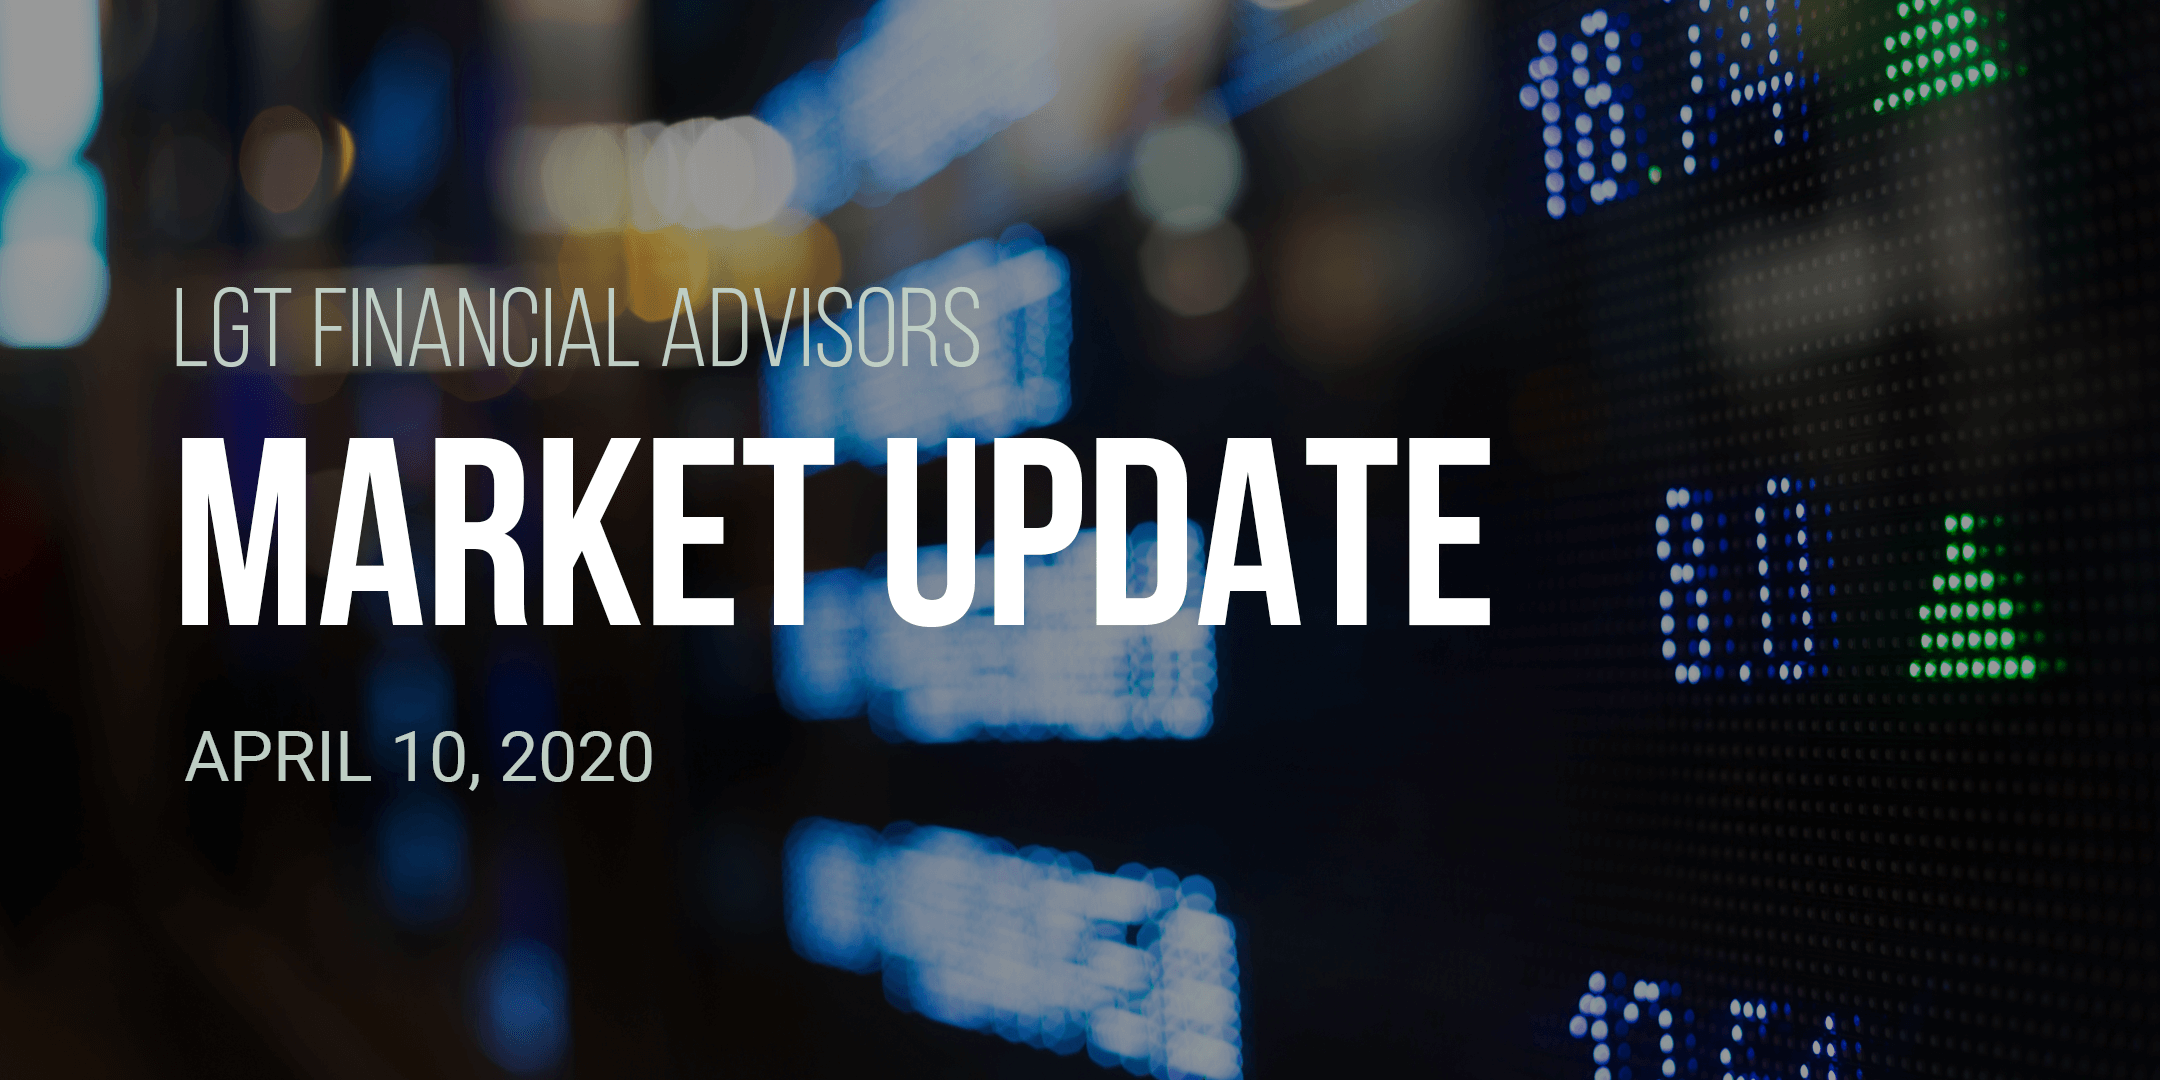 FA Market Update - April 10, 2020